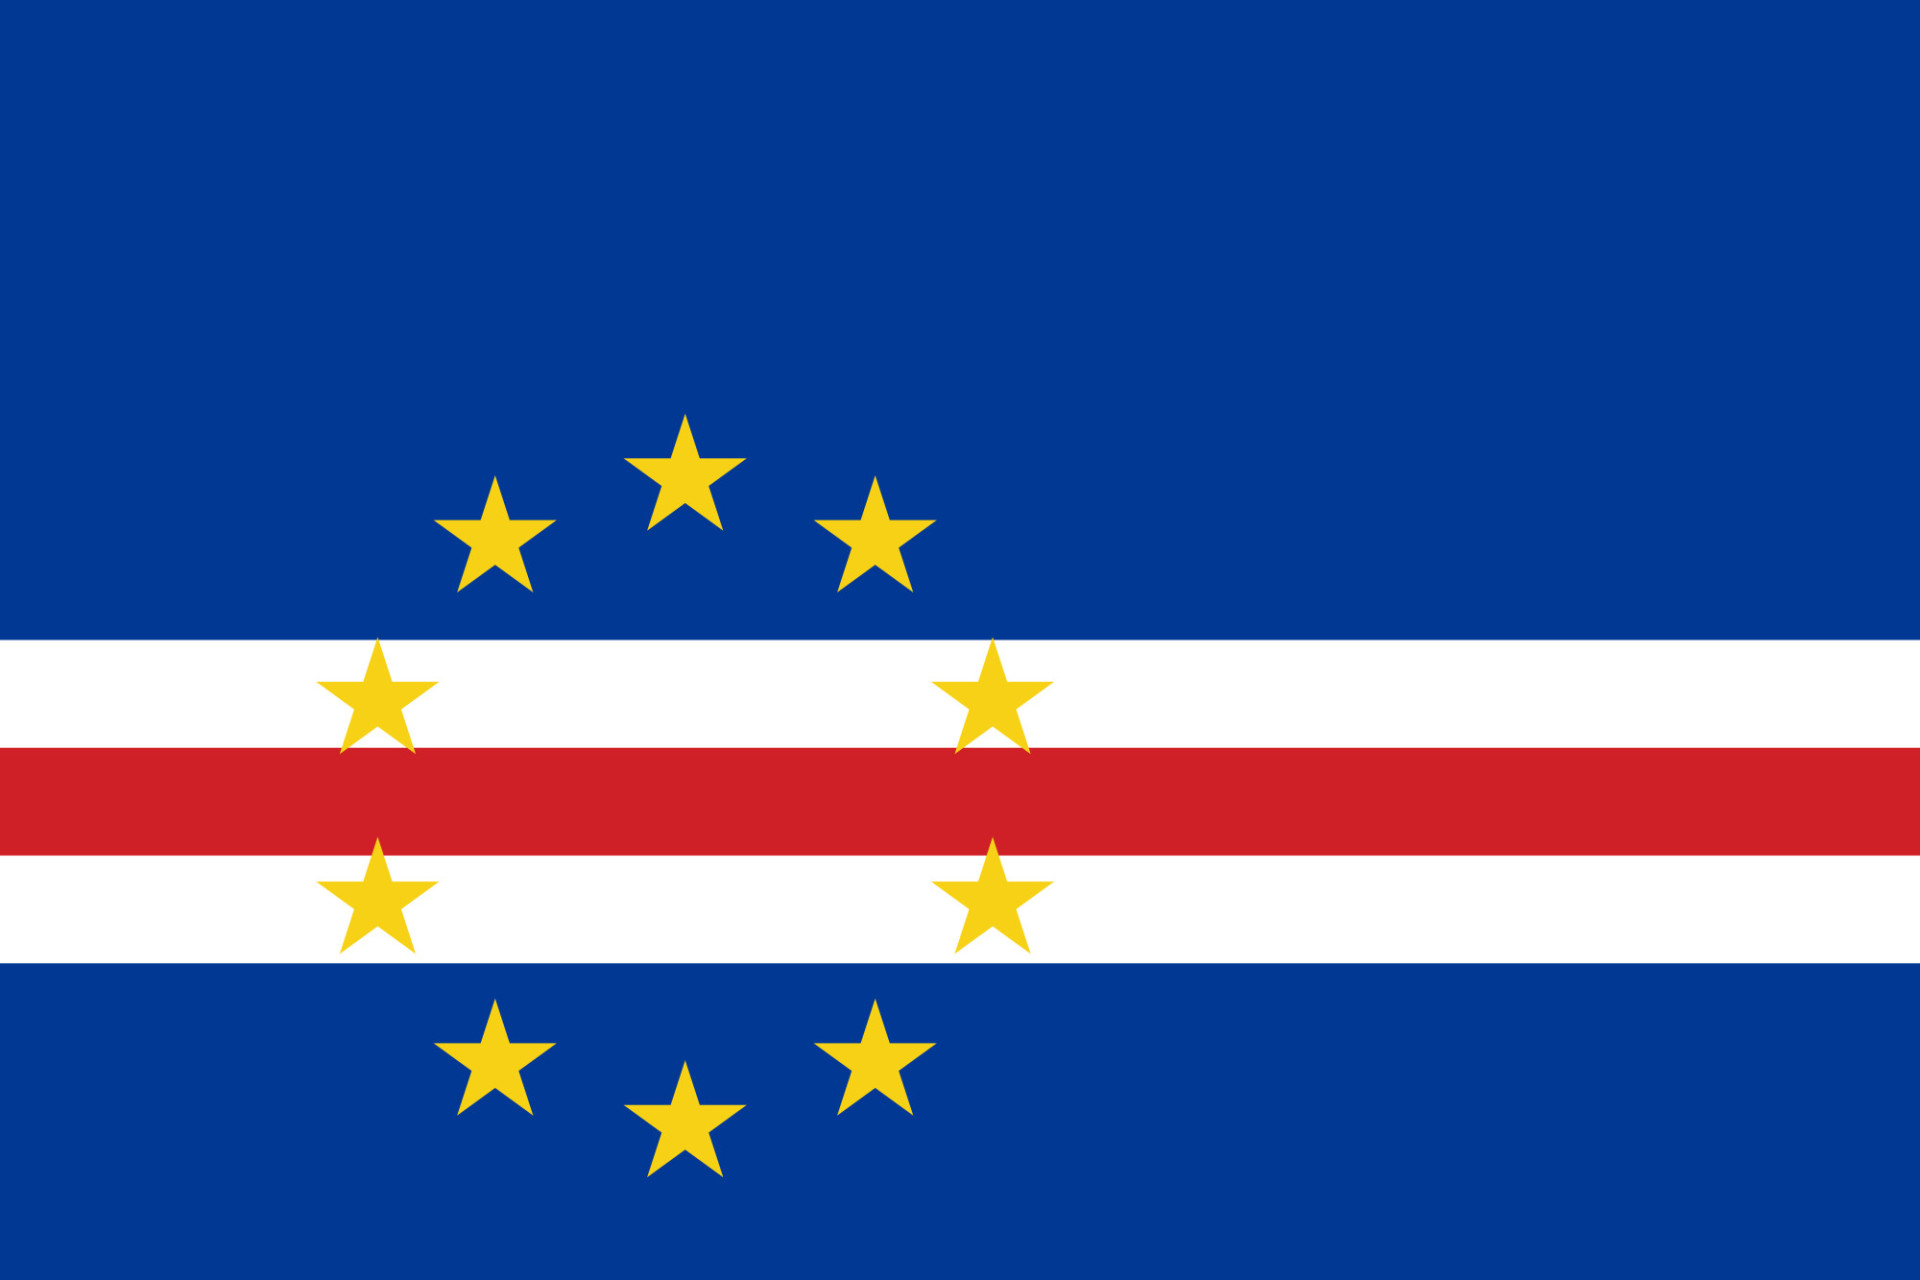 cape verde flag image and vector